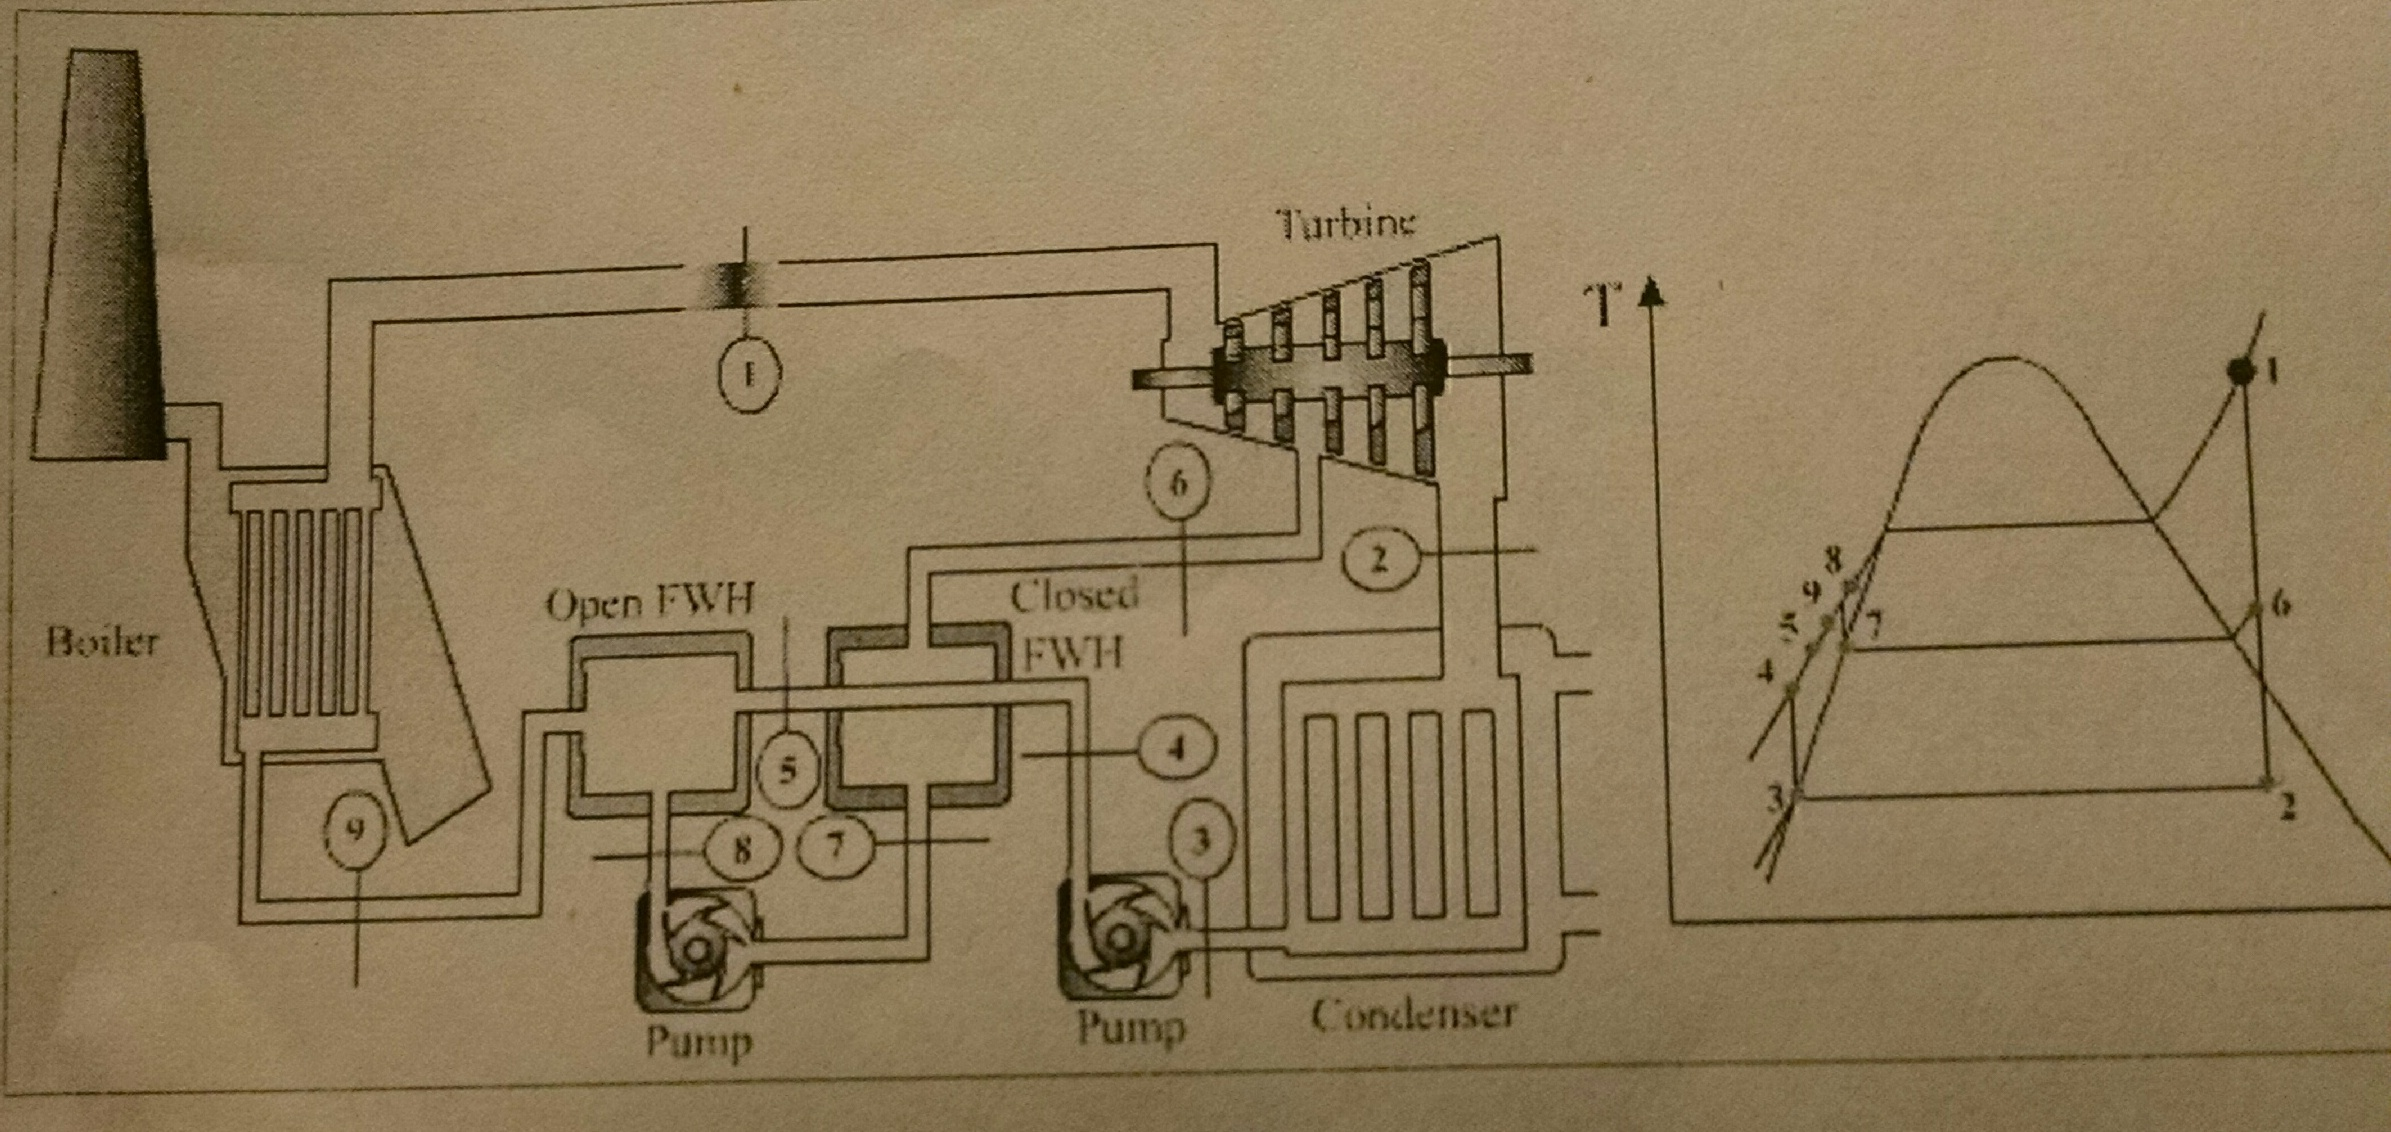 T S Diagram Power Plant Trusted Wiring Diagrams Gas Schematic Solved The And Of A Steam Pl Rh Chegg Com Turbine Thermal